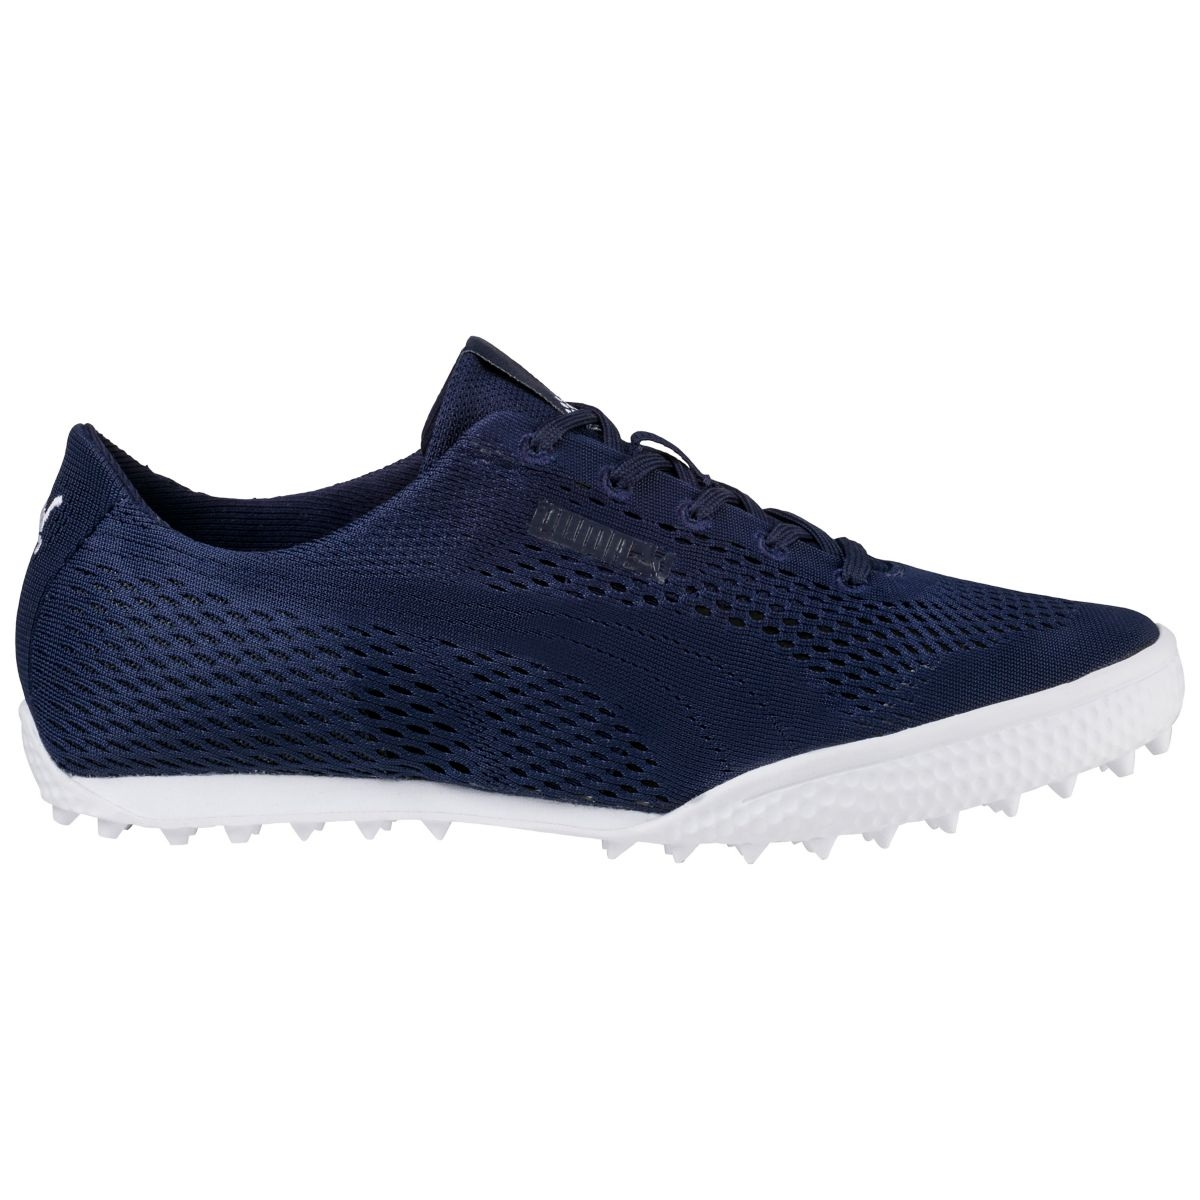 Puma Womens Monolite Cat Woven Spikeless Golf Shoe - Peacoat